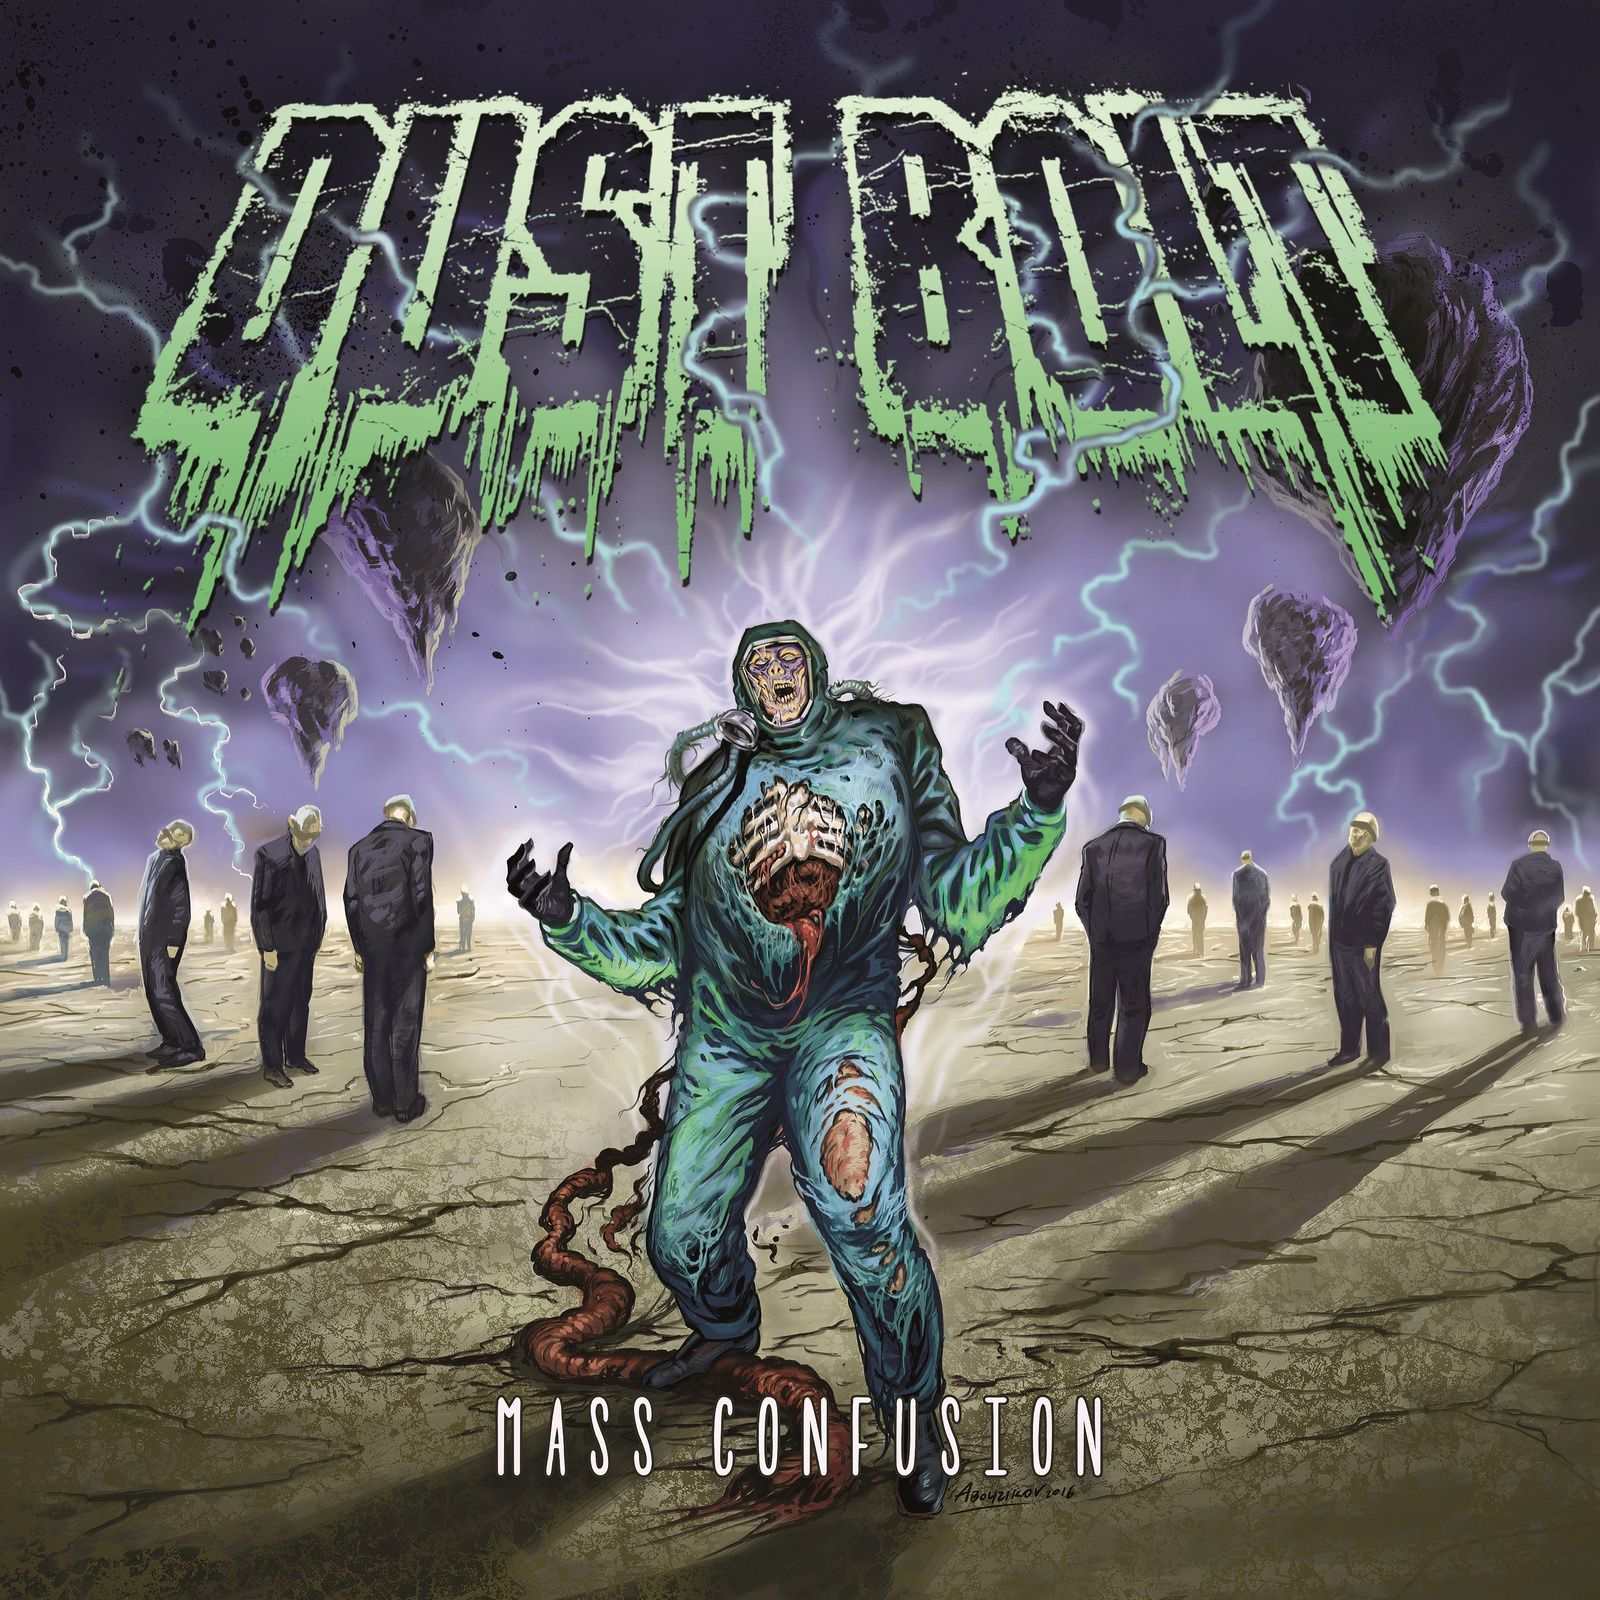 CD review DUST BOLT &quot&#x3B;Mass Confusion&quot&#x3B;